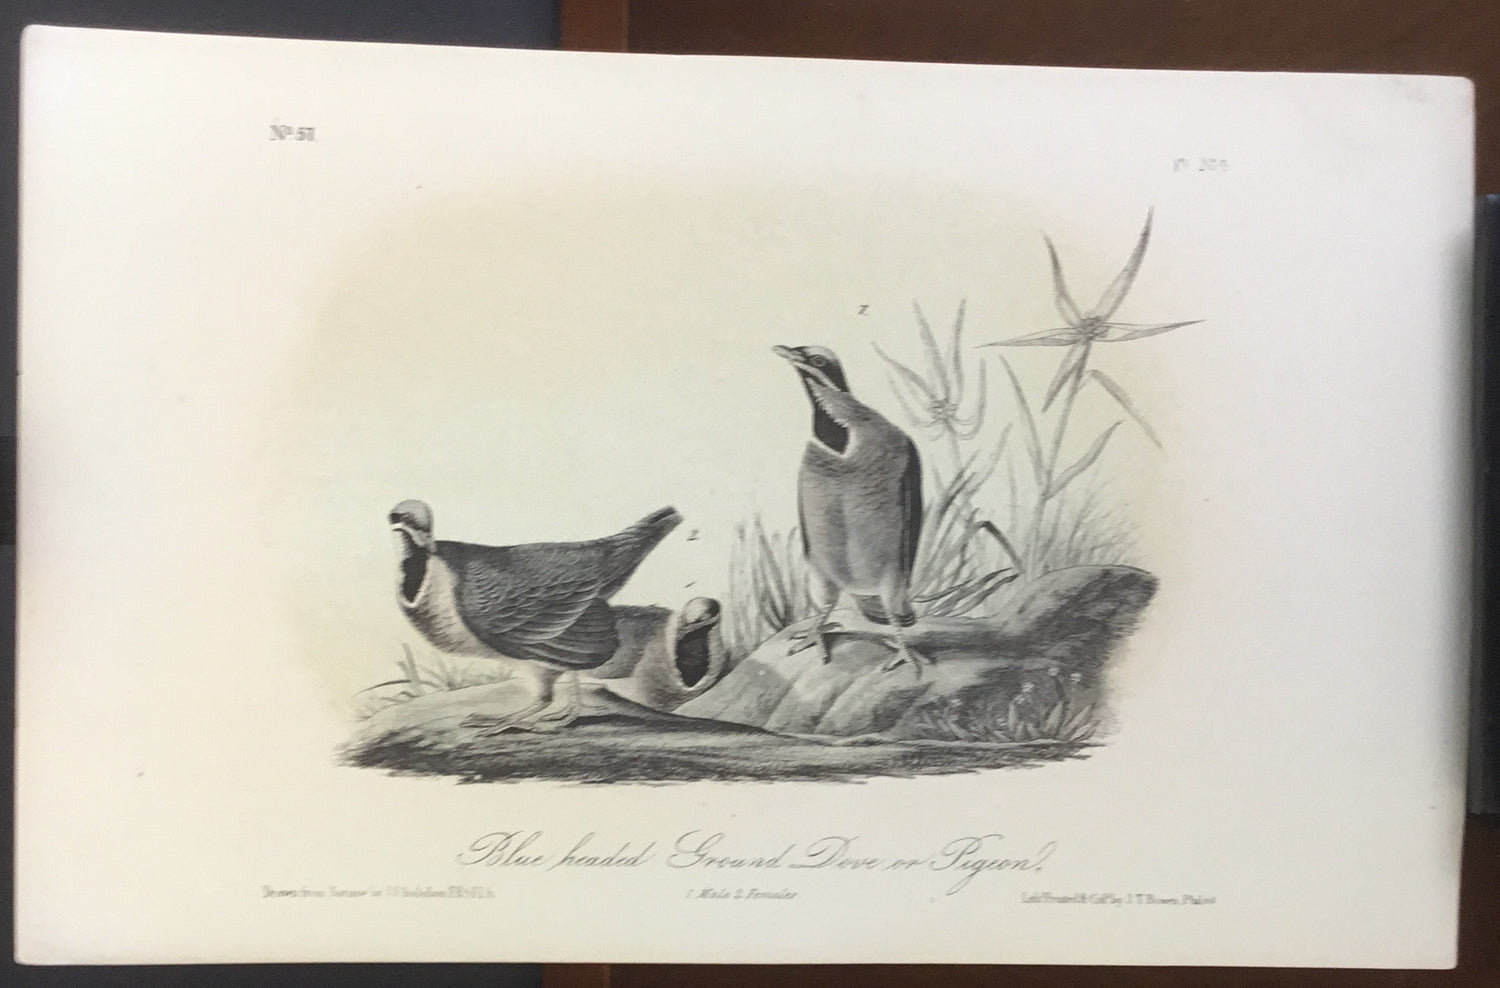 Audubon Octavo Blue-headed Ground Dove, plate 284, uncolored test sheet, 7 x 11